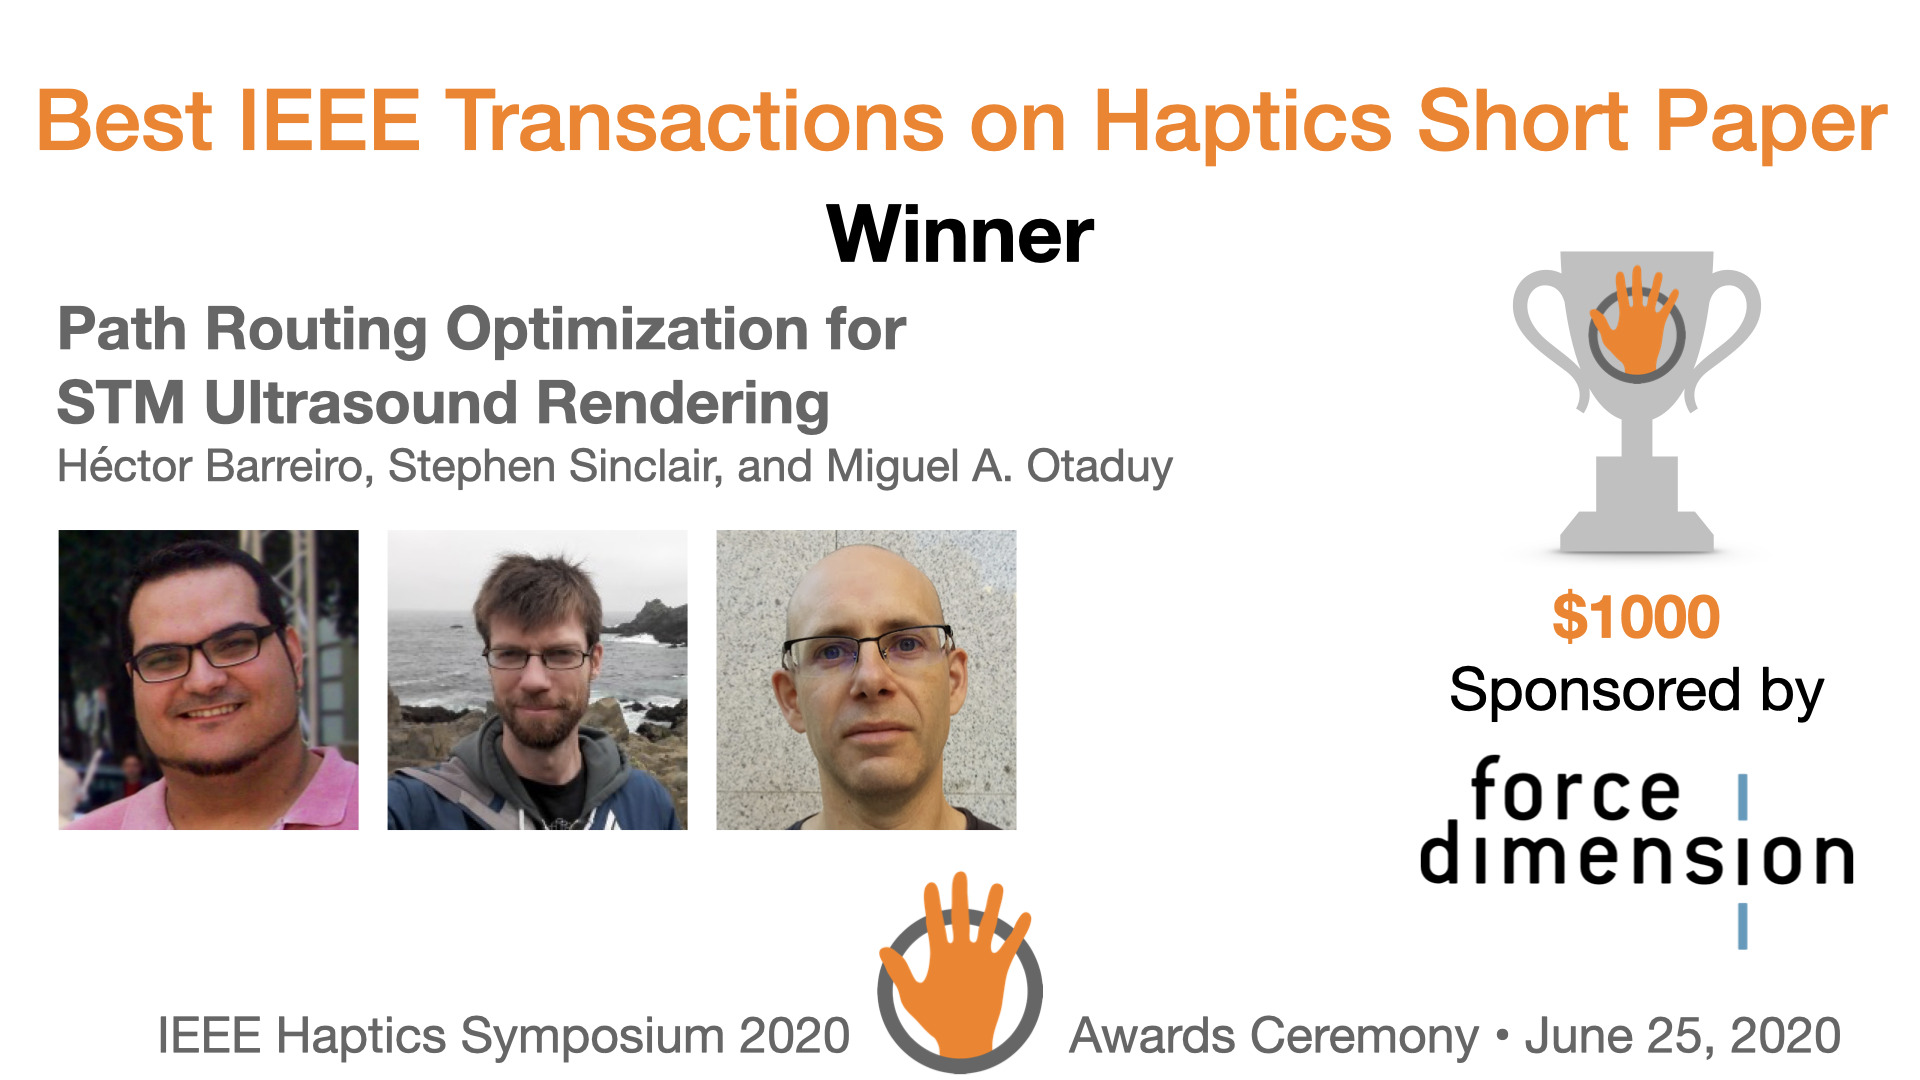 An award slide featuring the authors and sponsor